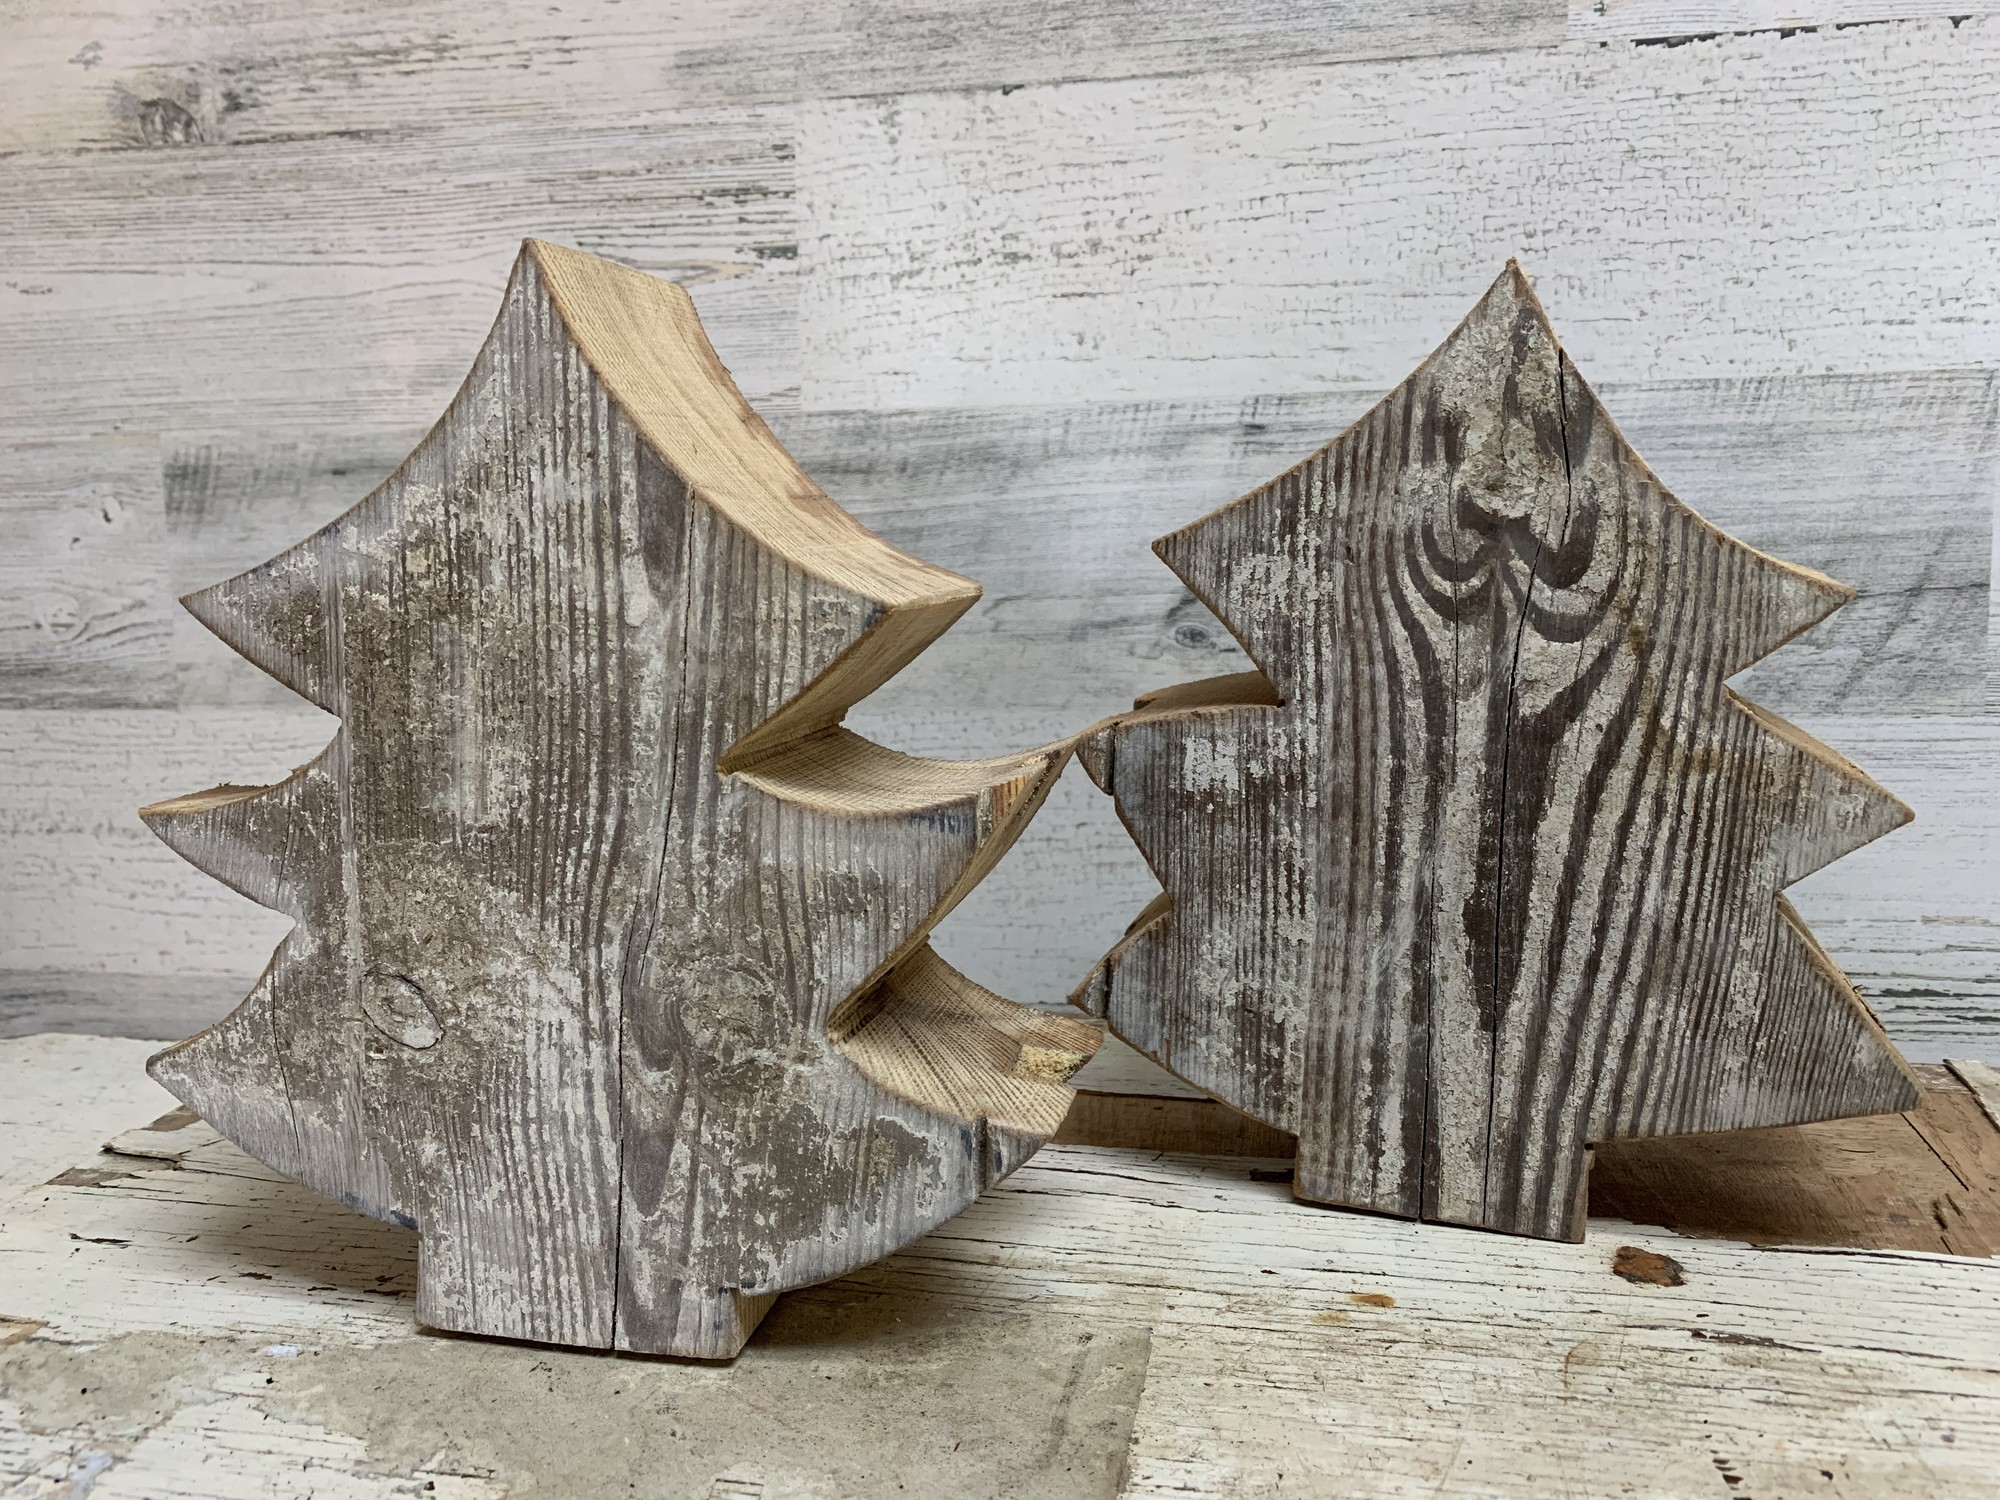 Beautiful decor for your beautiful home. Besides little sanded down there is no any other finish done to it.<br /> Please note that you may receive your item not as shown in the pictures simply because each beam is different shade, color, shape, visual condition, but quality is the same - will last forever!<br /> Perfect for rustic country, rustic decor, cottage core lovers.<br /> May be used as a centerpiece, decor, diy projects etc.,.<br /> Measures approx 8'' tall, 7'' long, 2 3/4'' wide.<br /> Please make sure to look at all the pictures for a closer visual.<br /> Thank you.